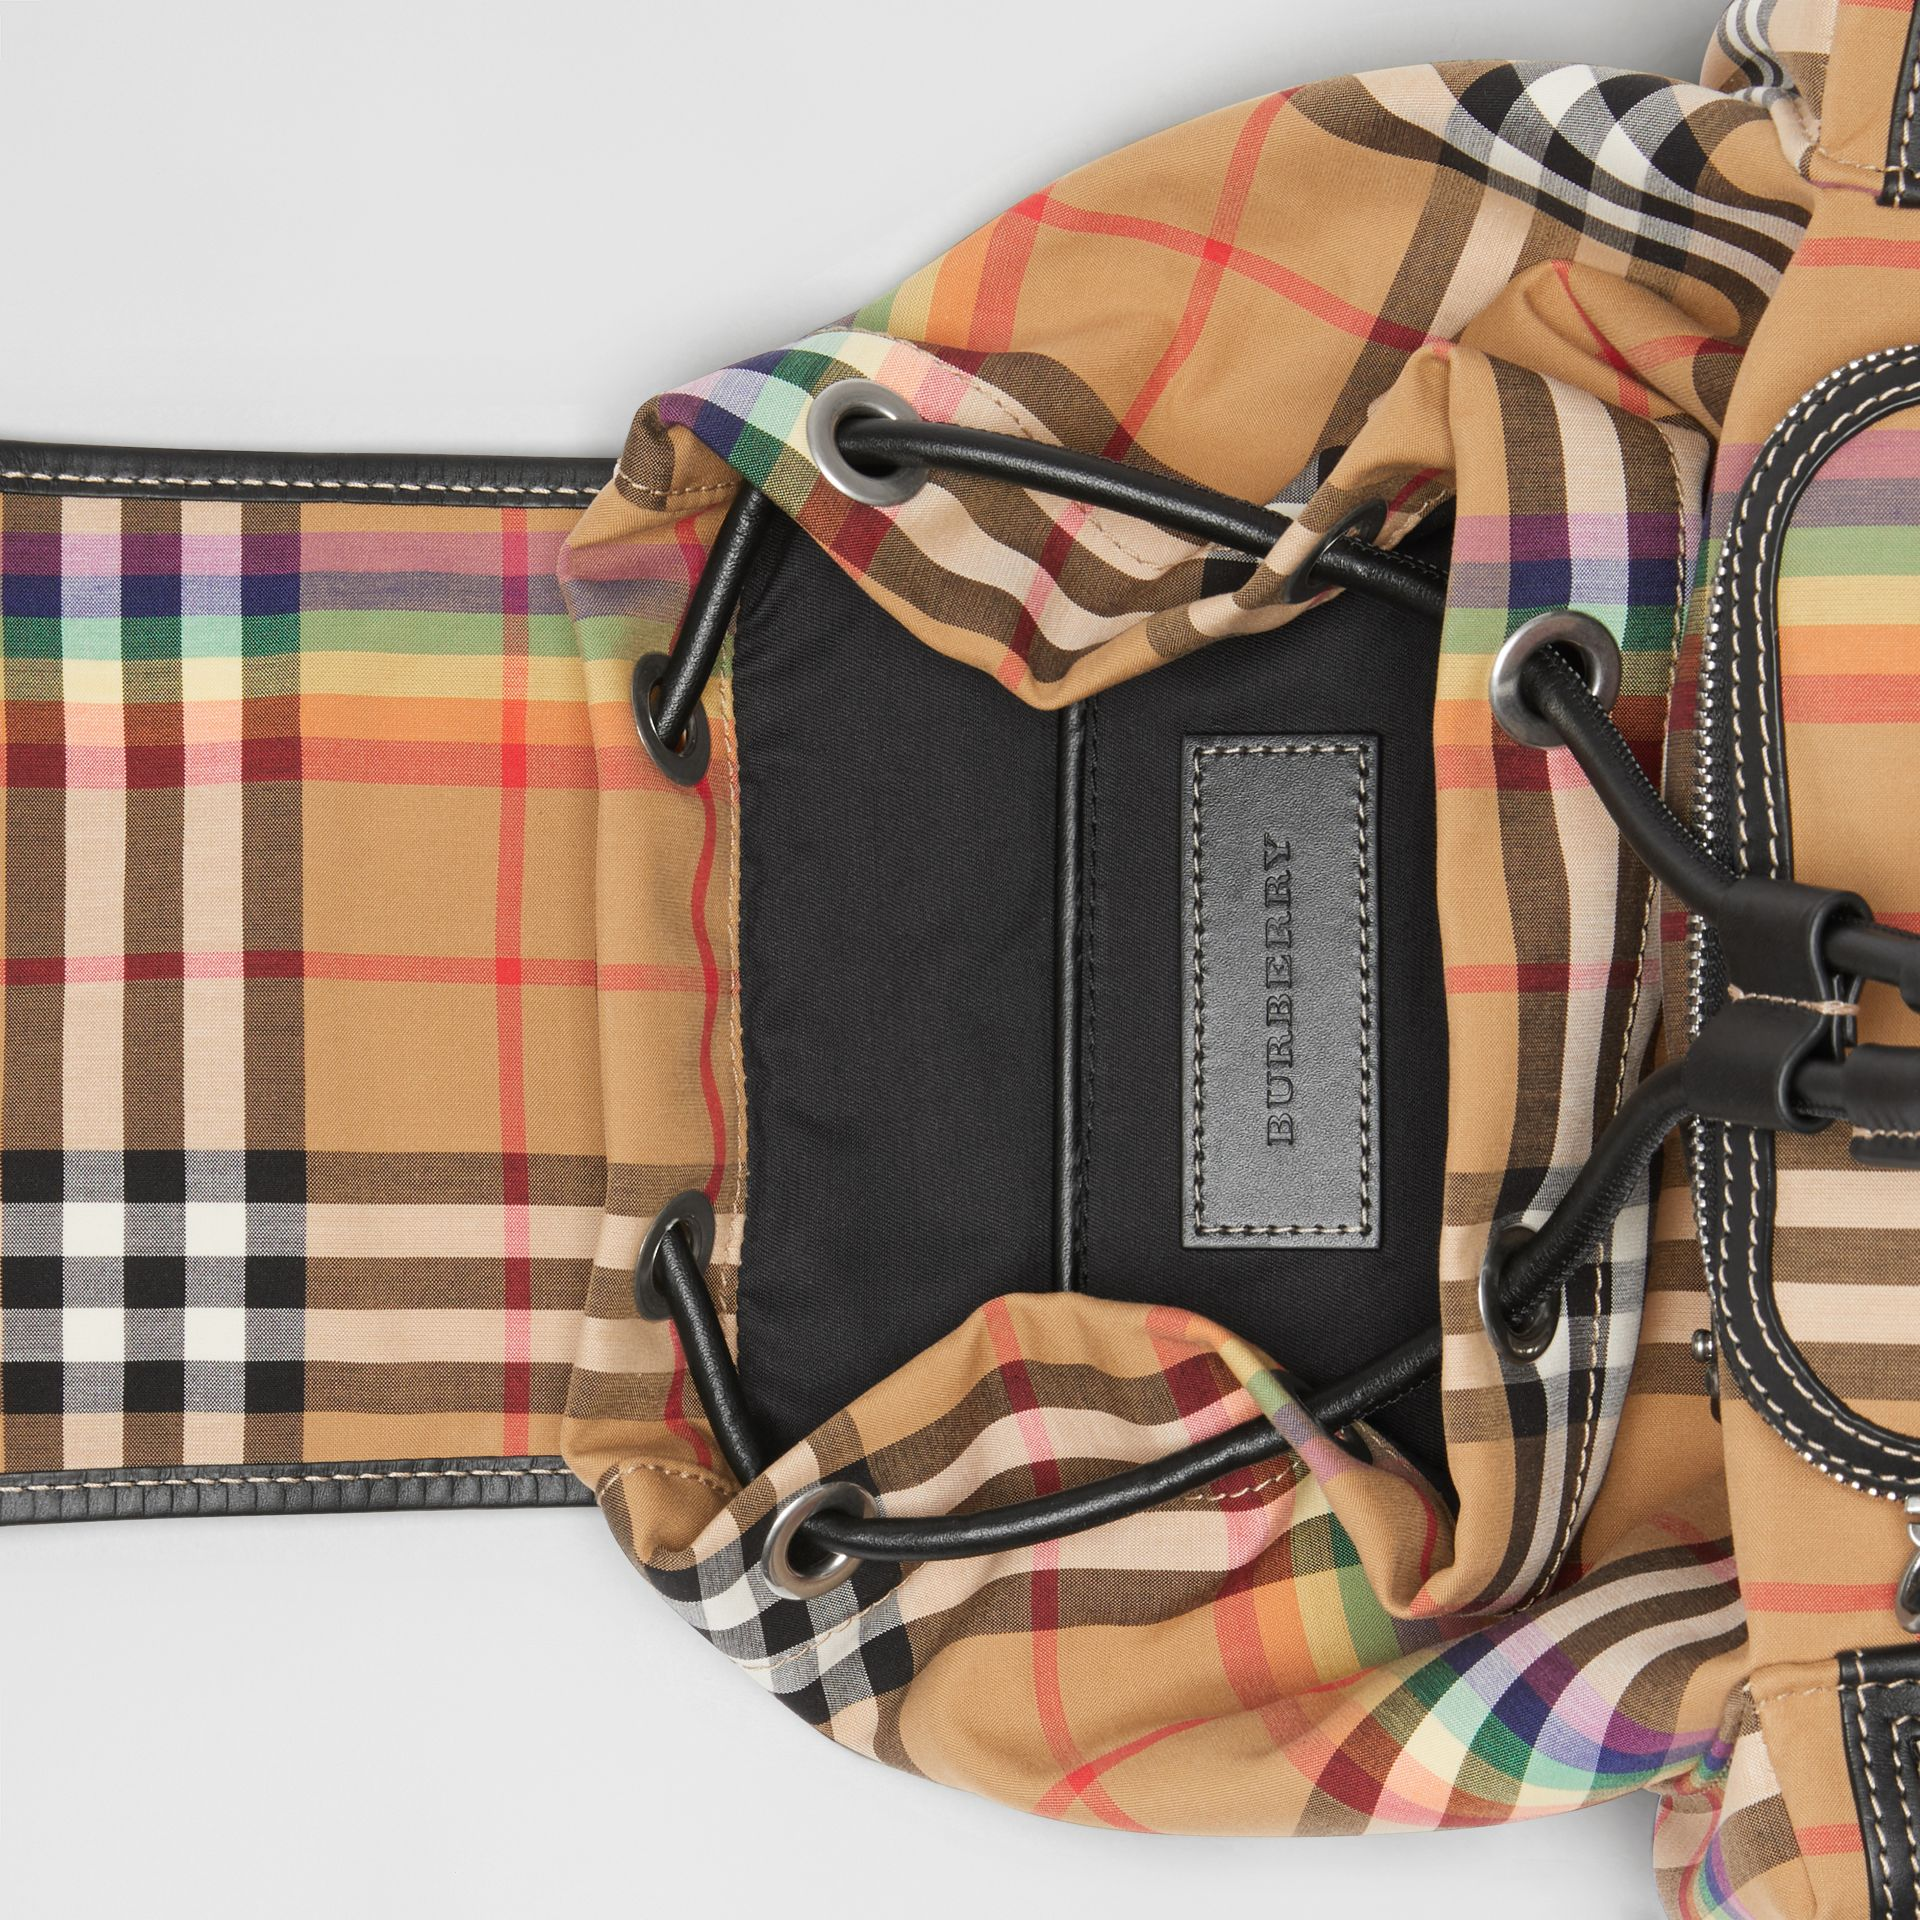 Petit sac The Rucksack à bandoulière avec motif Rainbow Vintage check (Jaune Antique) - Femme | Burberry Canada - photo de la galerie 3